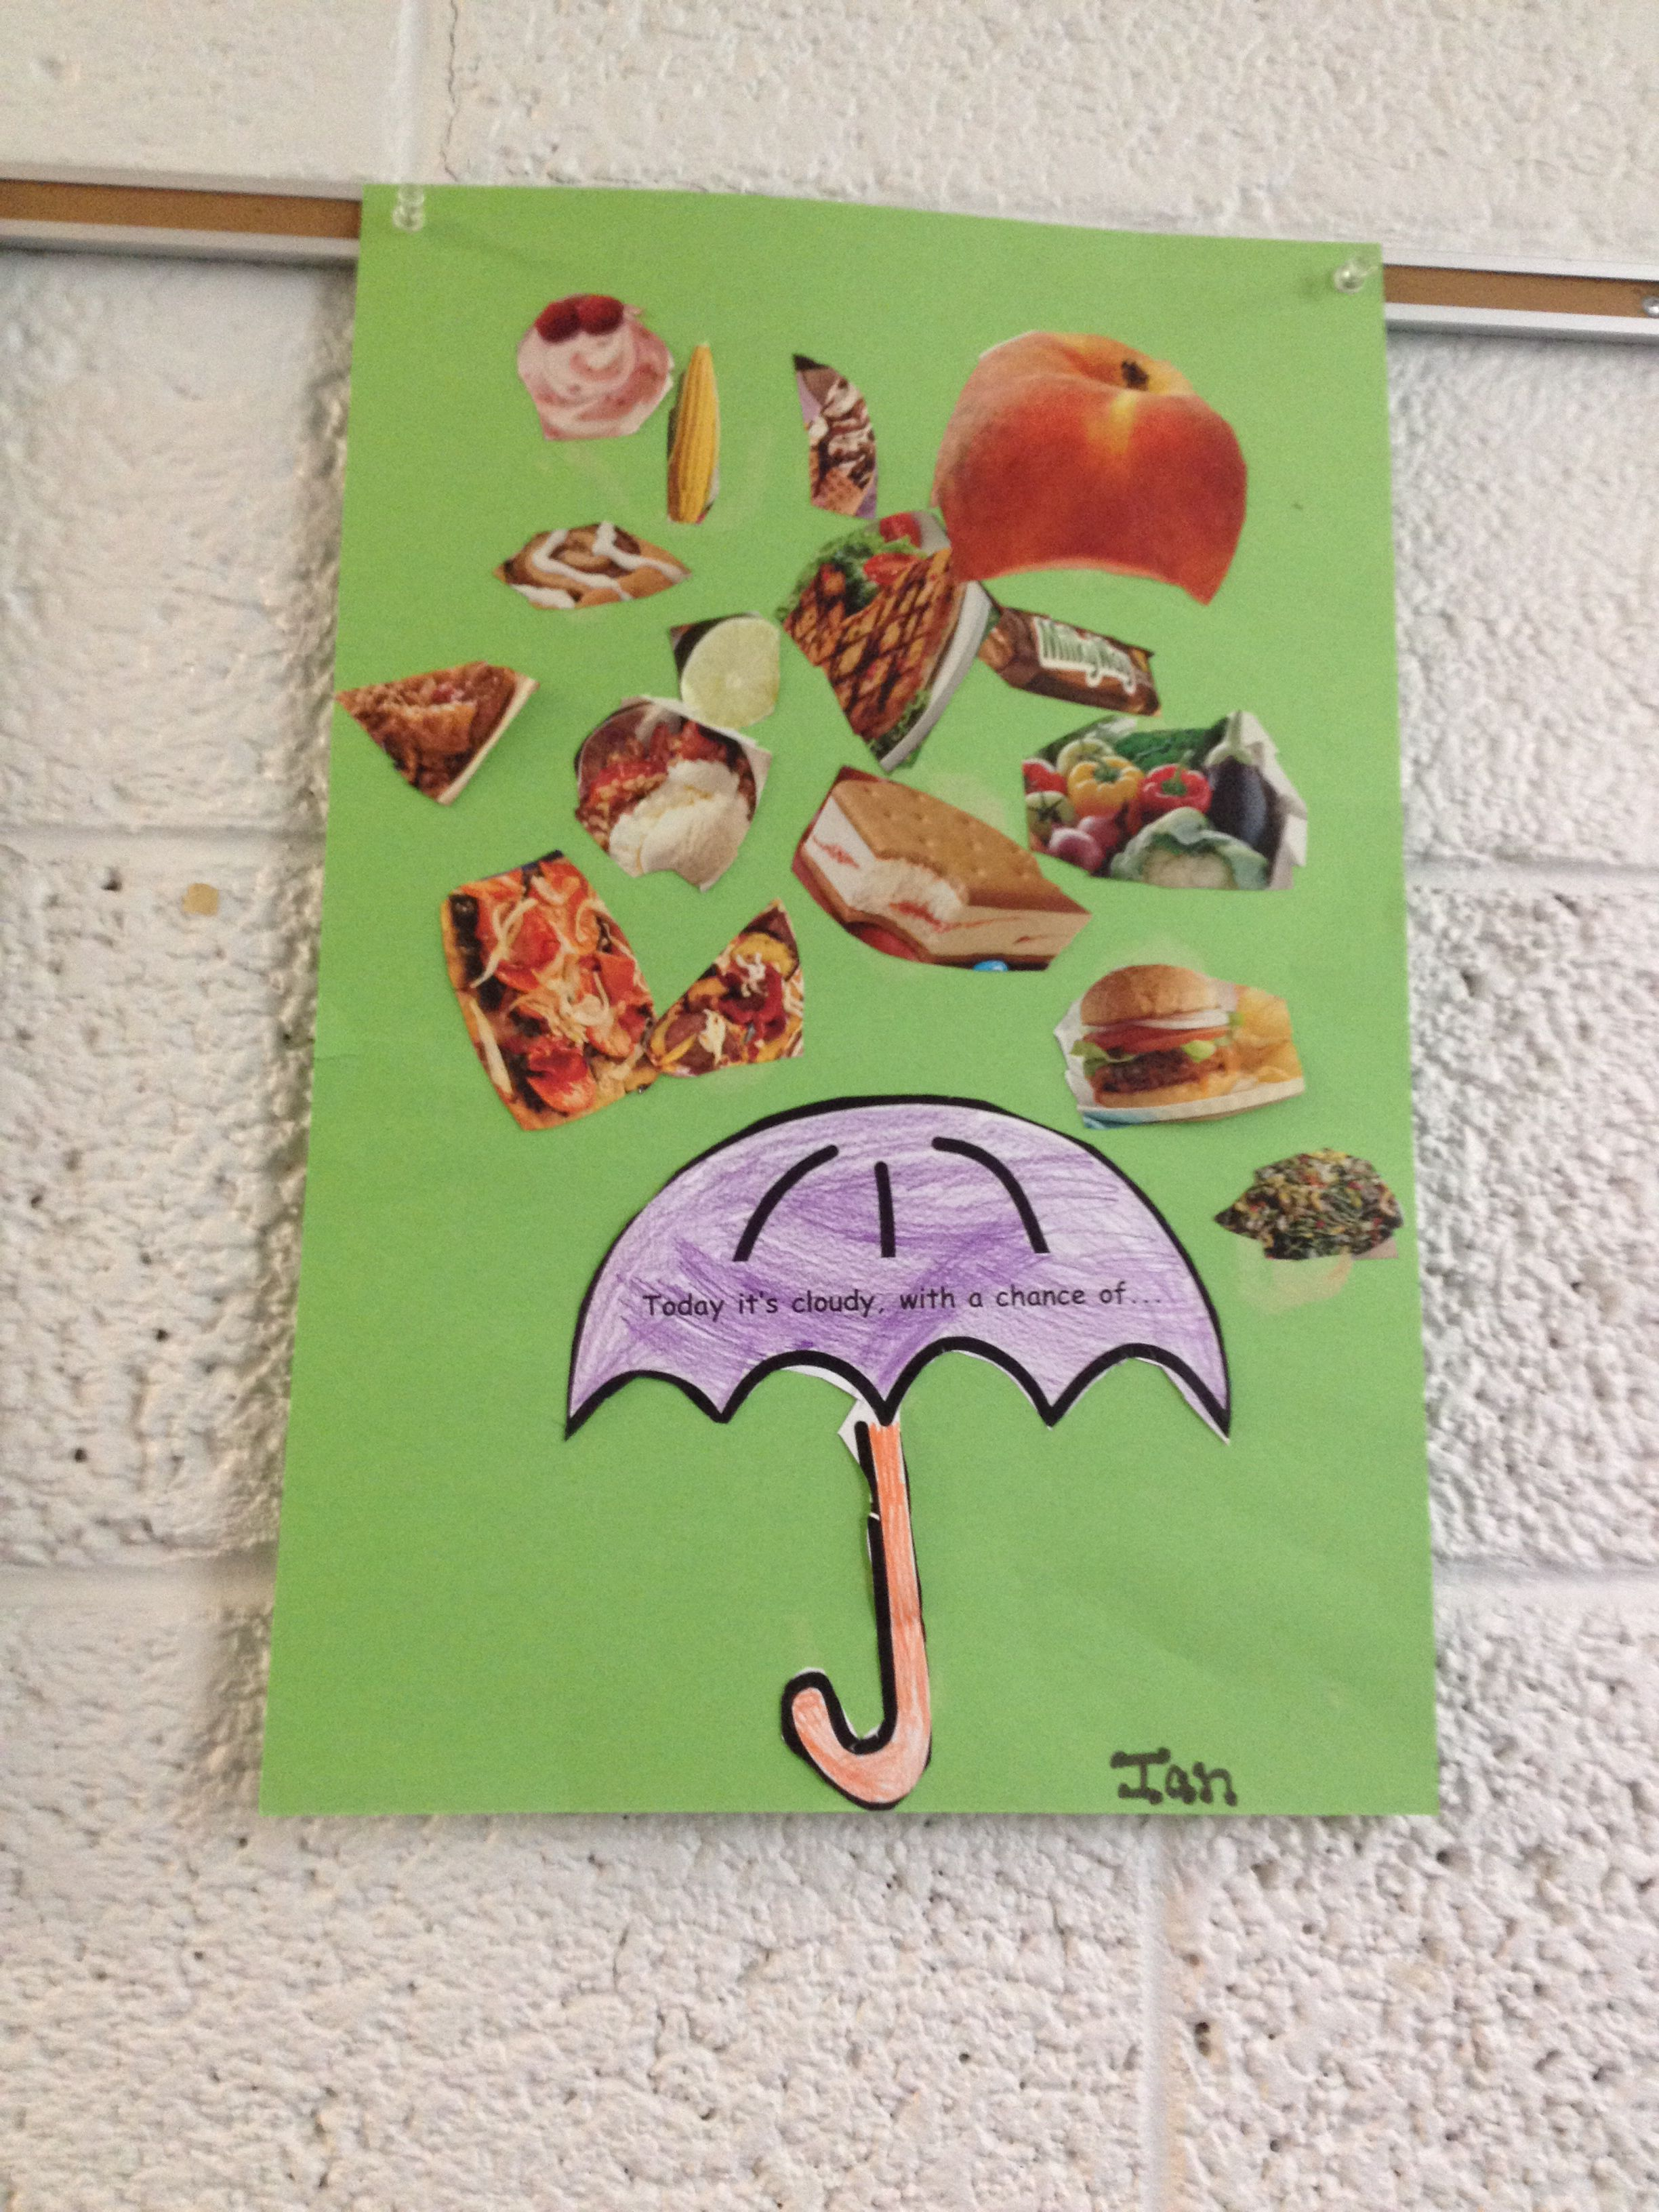 Cloudy with a chance of meatballs craft! | reading | Pinterest ...